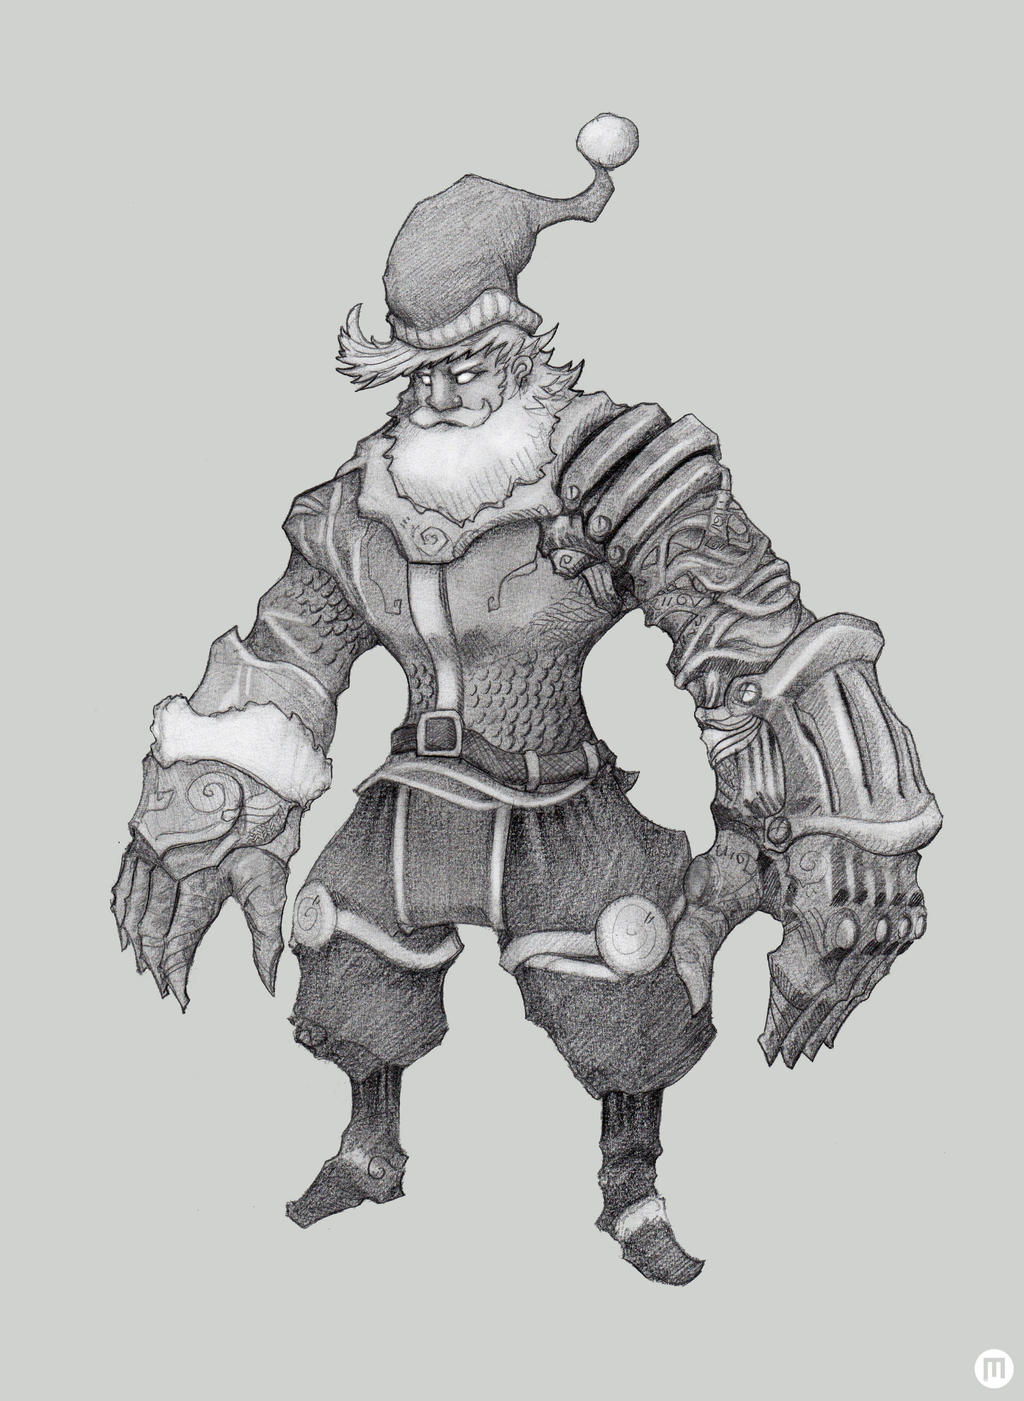 Santa Claus Iii By Mangokingoroo On Deviantart